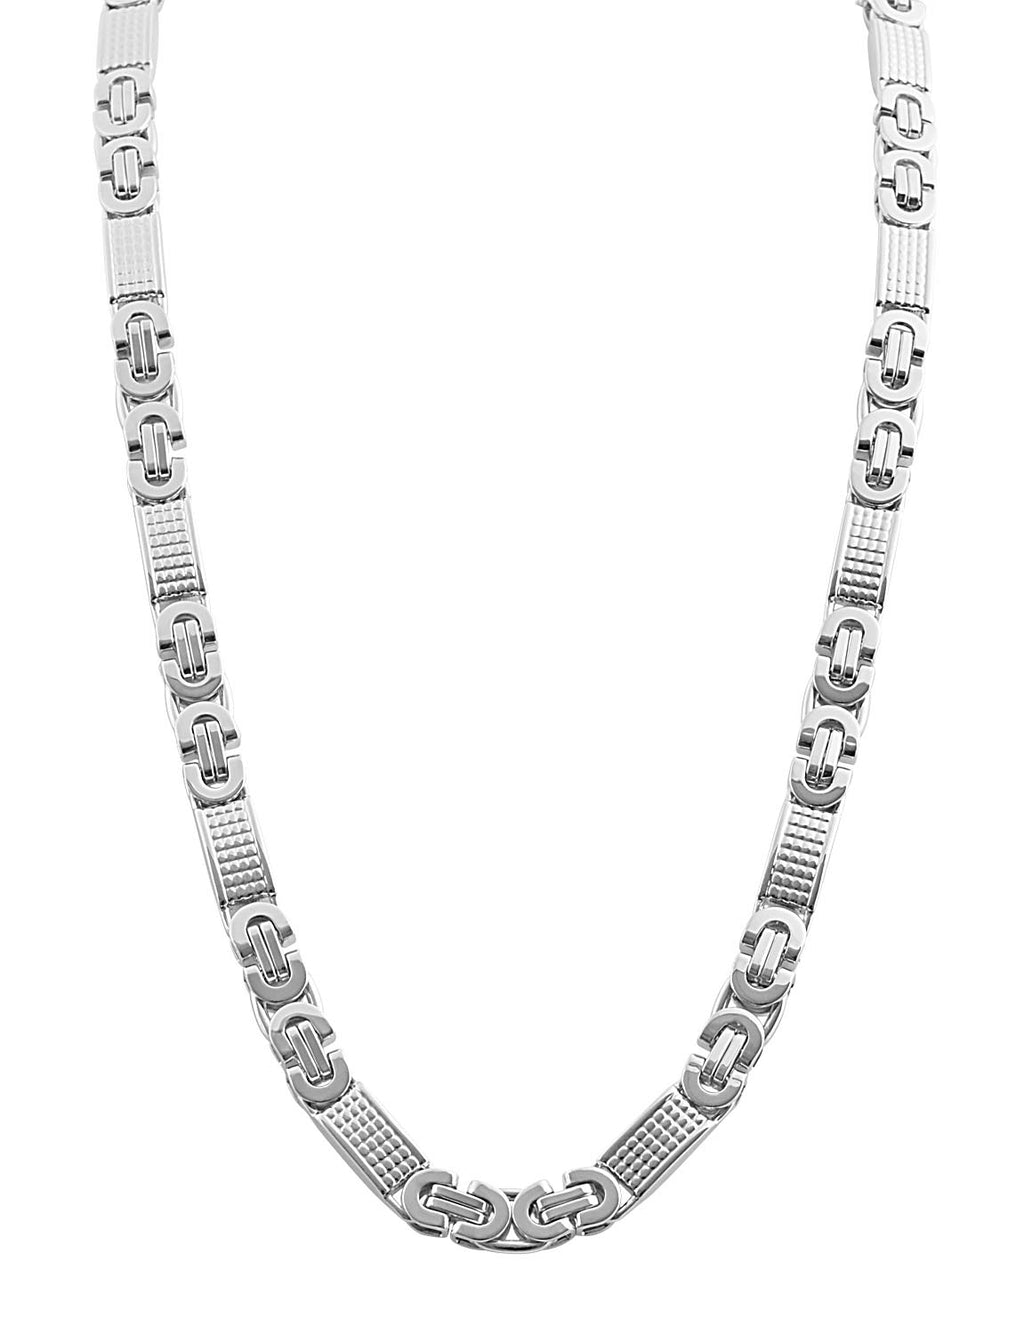 Silver Stainless Steel mix link design chain 24 inch length with a lobster claw clasp